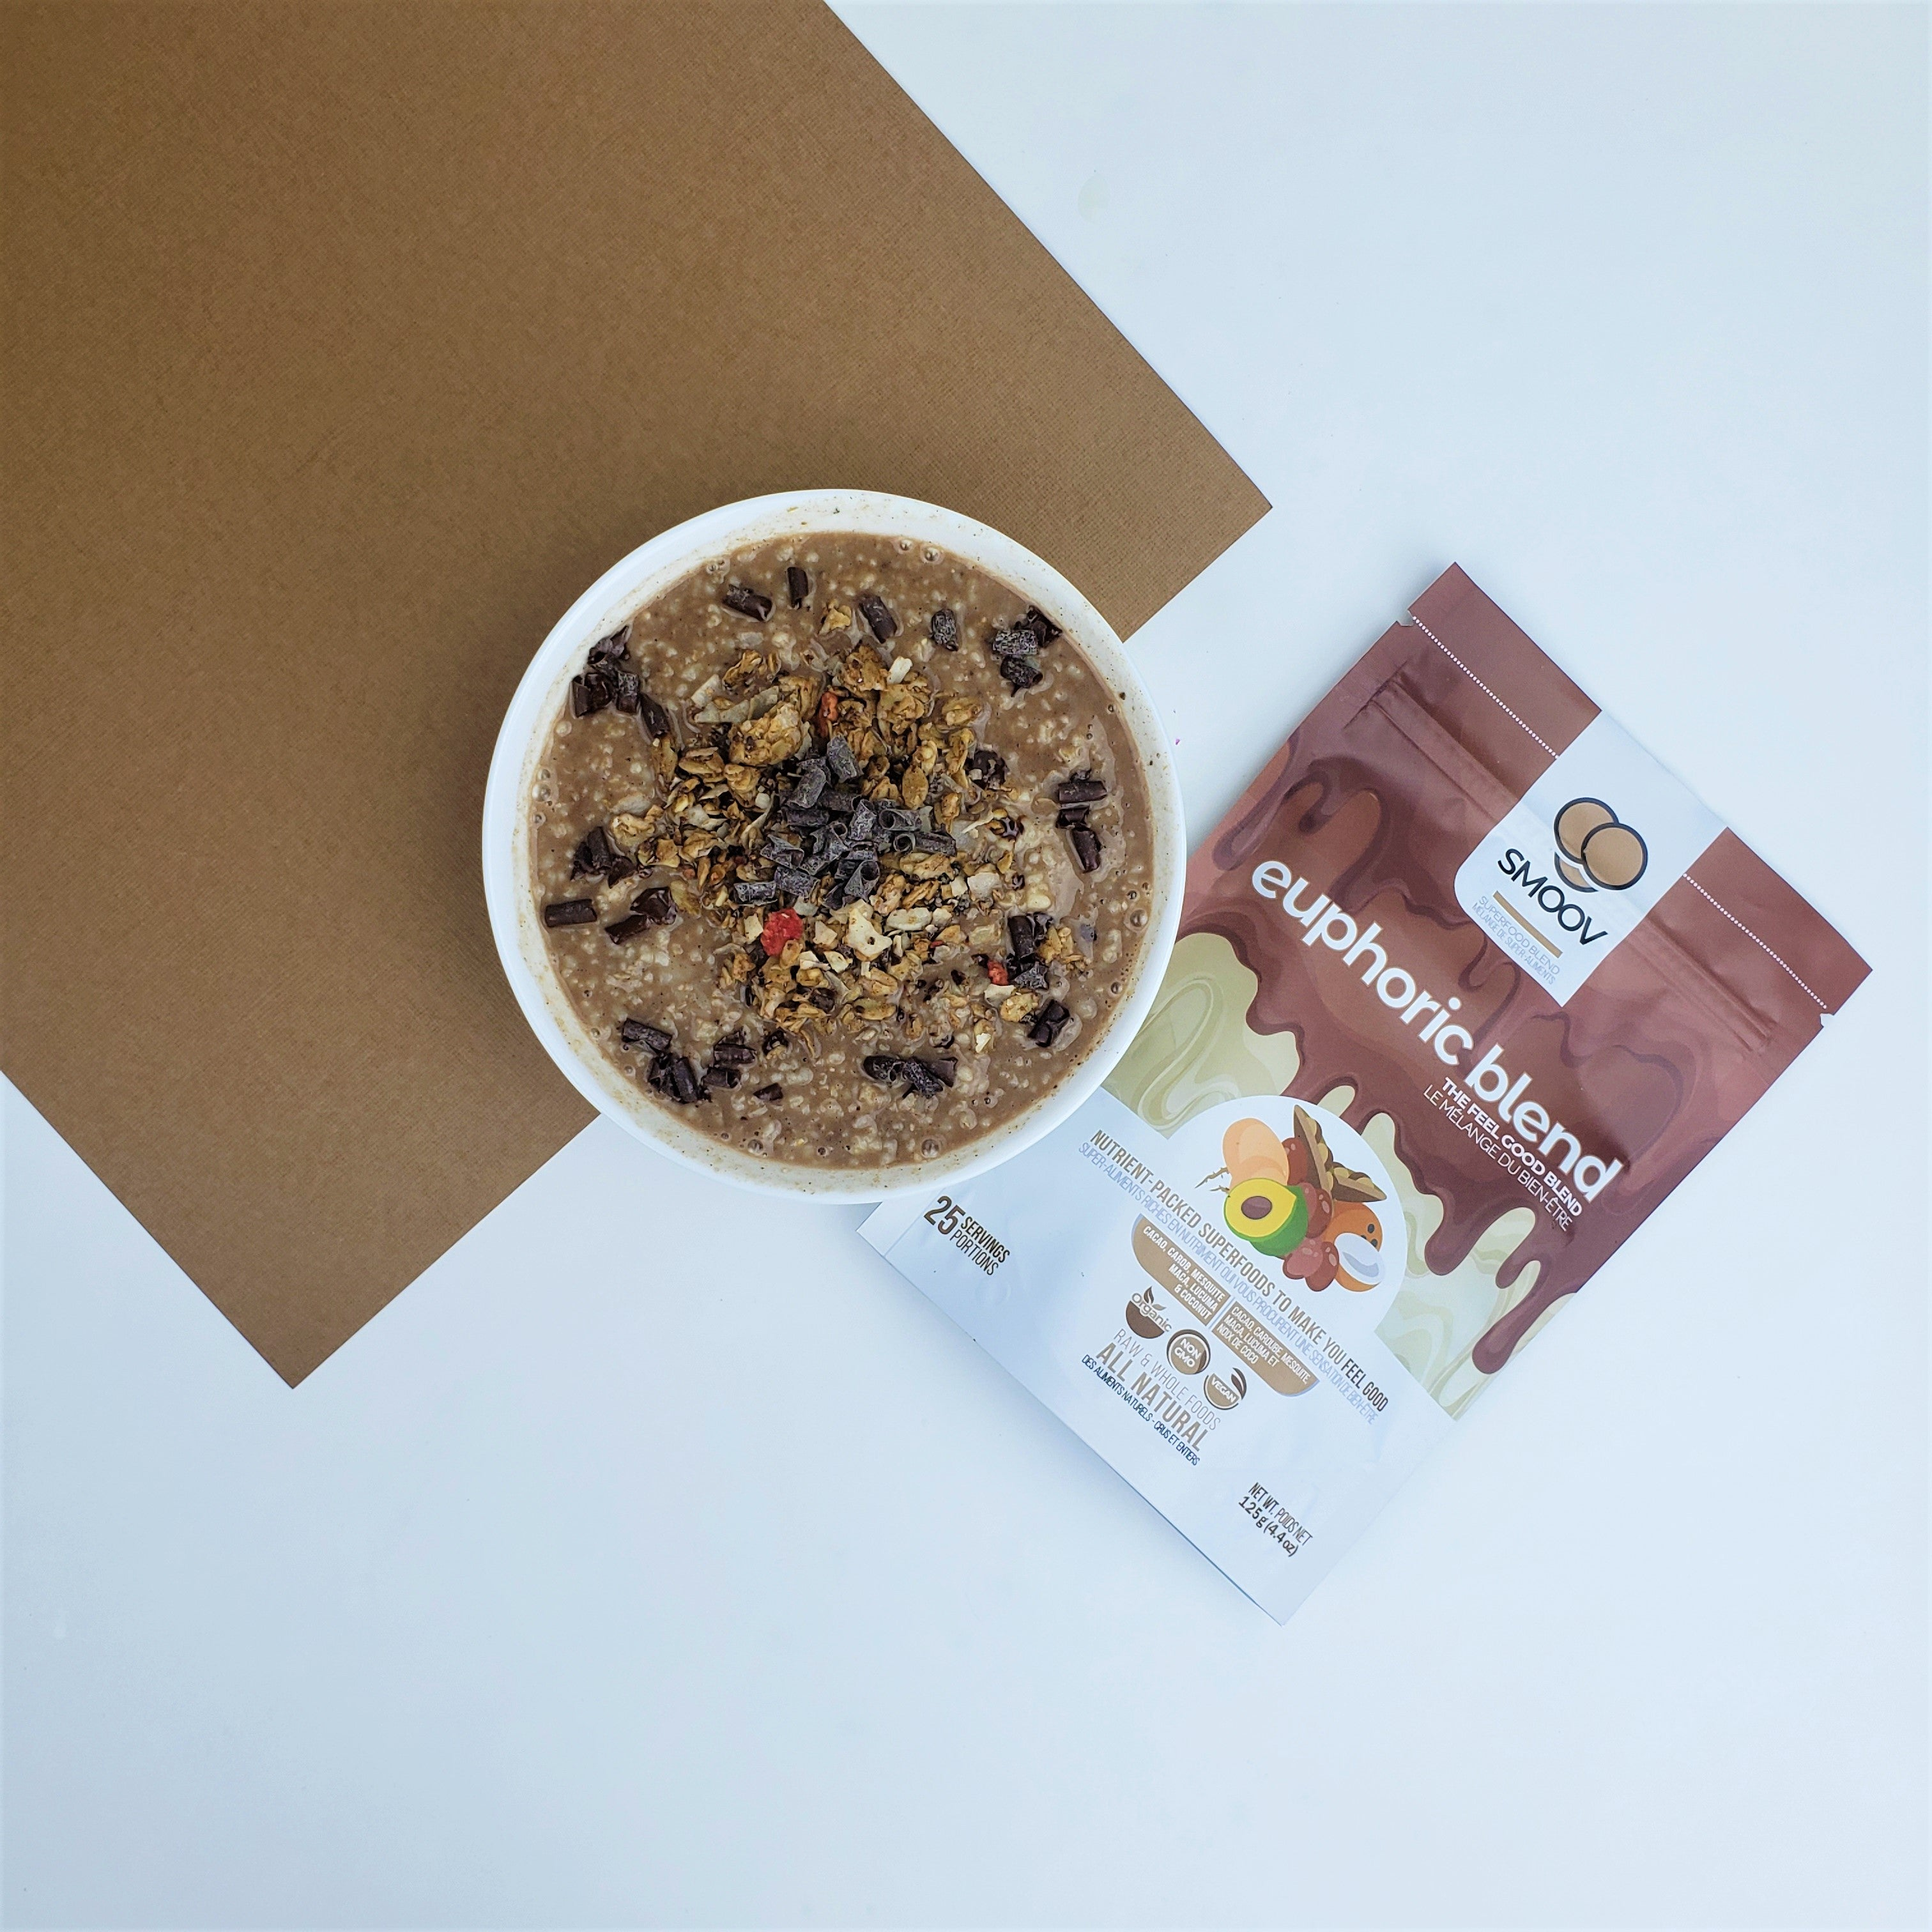 start your day off by entering euphoria. Using cacao and chocolatey superfoods that complement it